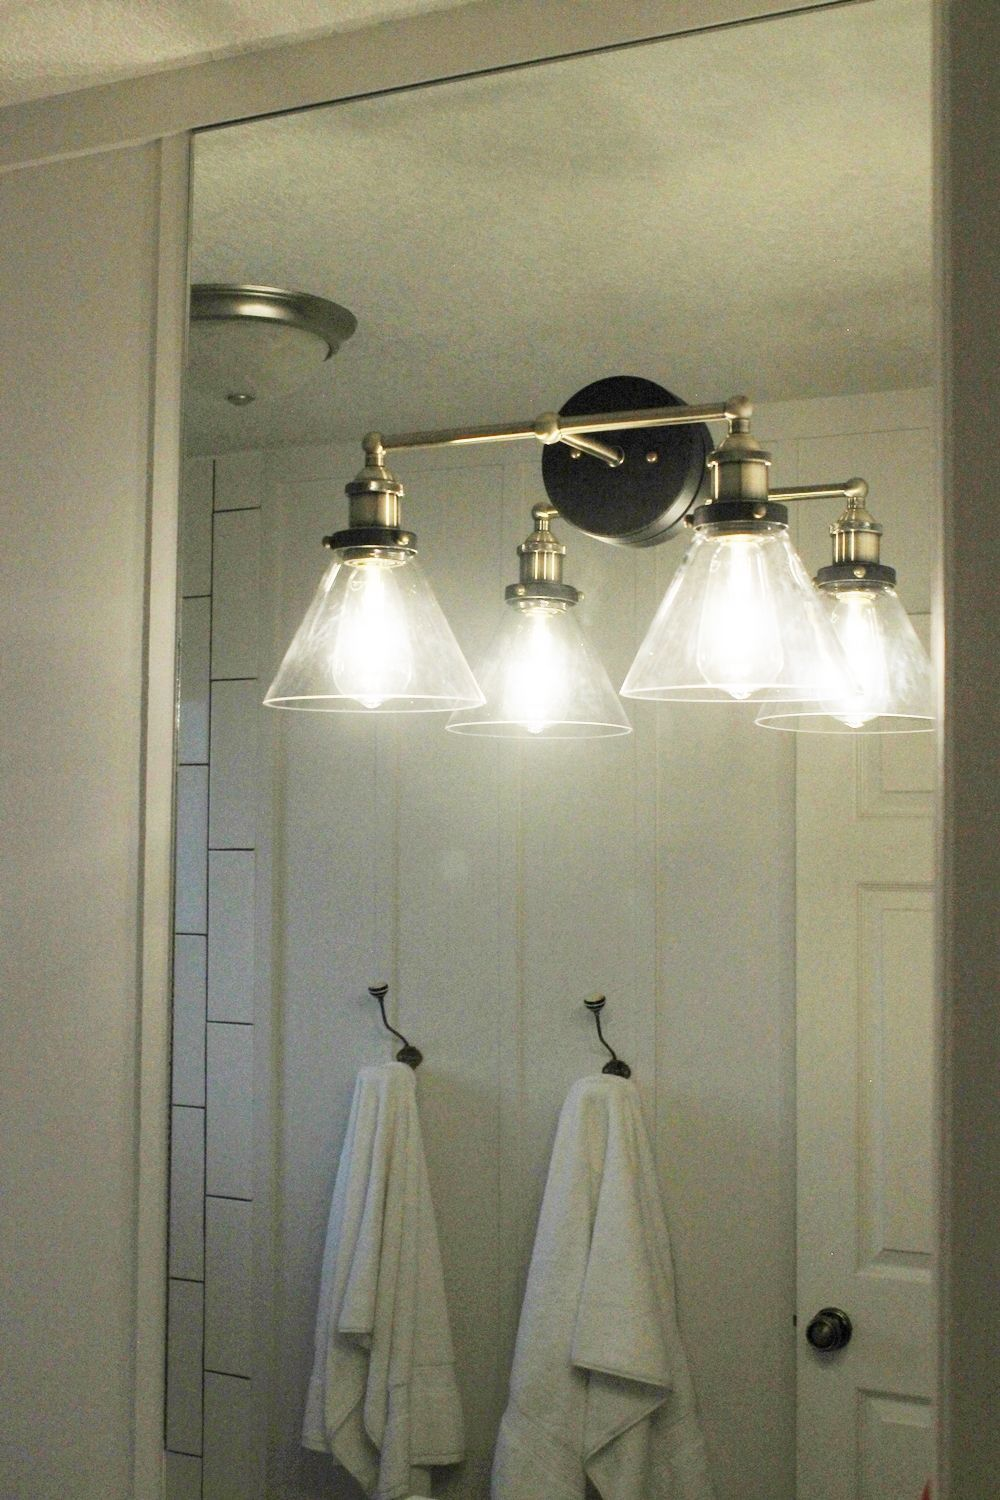 Bathroom Vanity Light Mounting Height how to mount a light on top of a mirror bathroom vanity